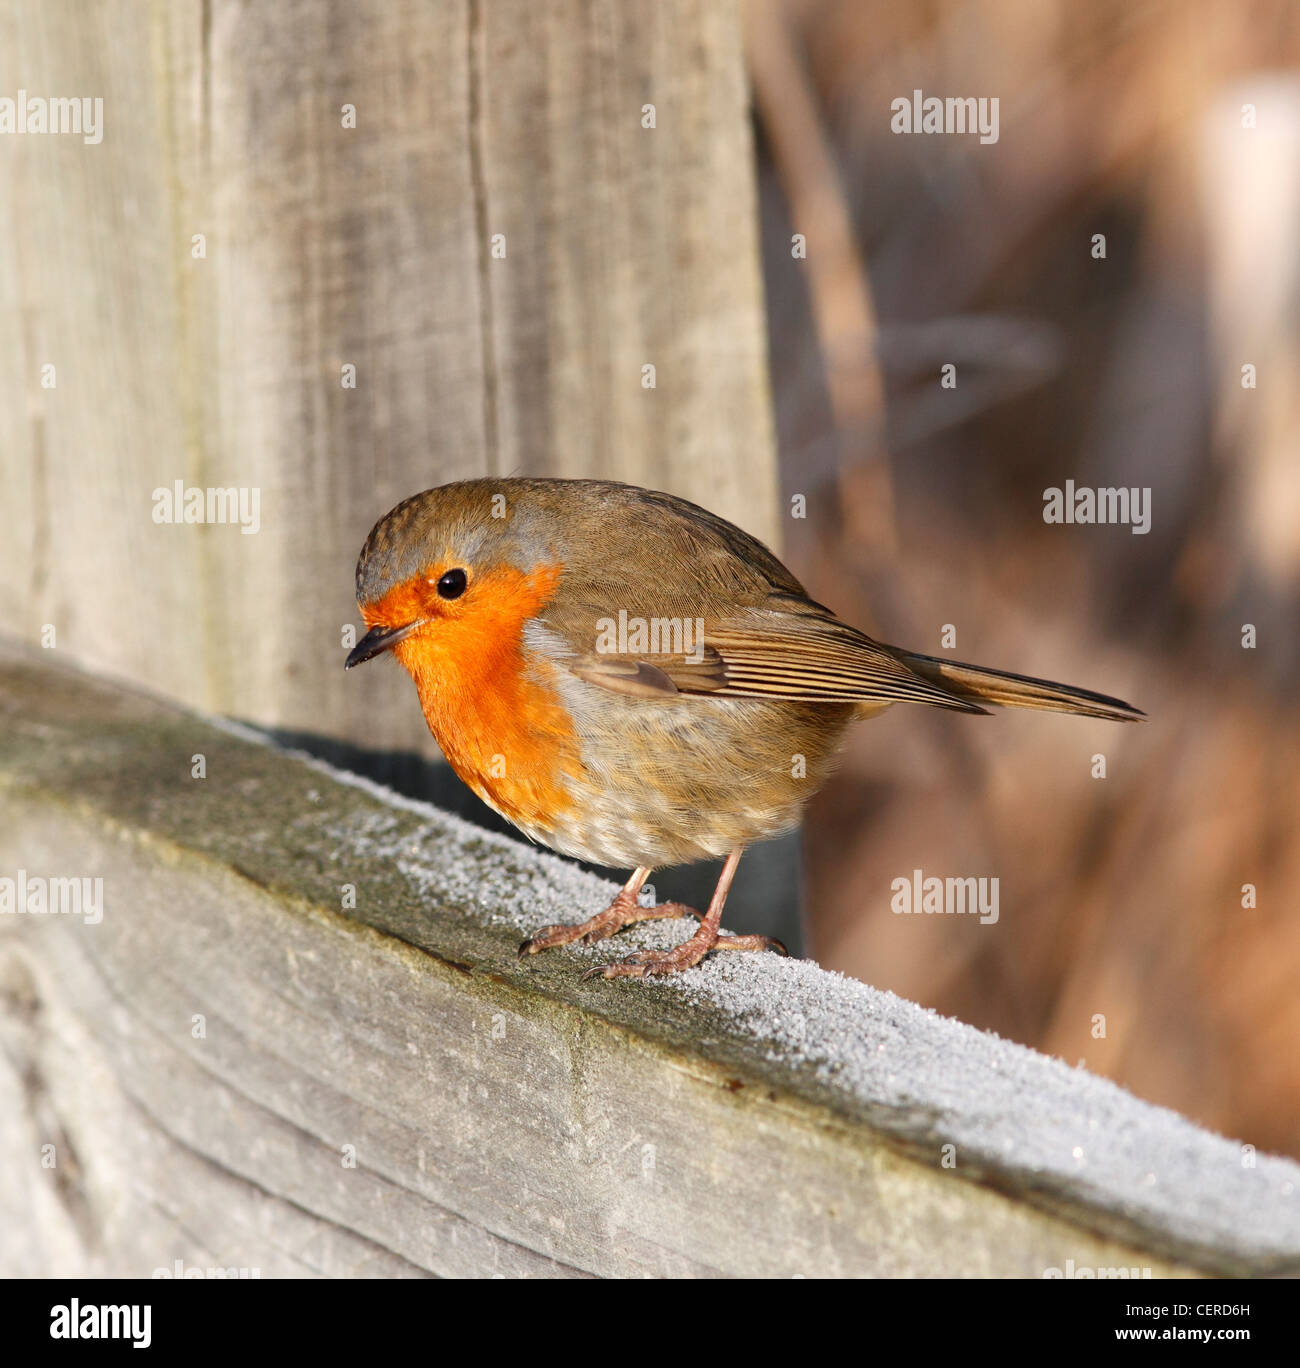 robin-redbreast-on-fence-in-winter-CERD6H.jpg